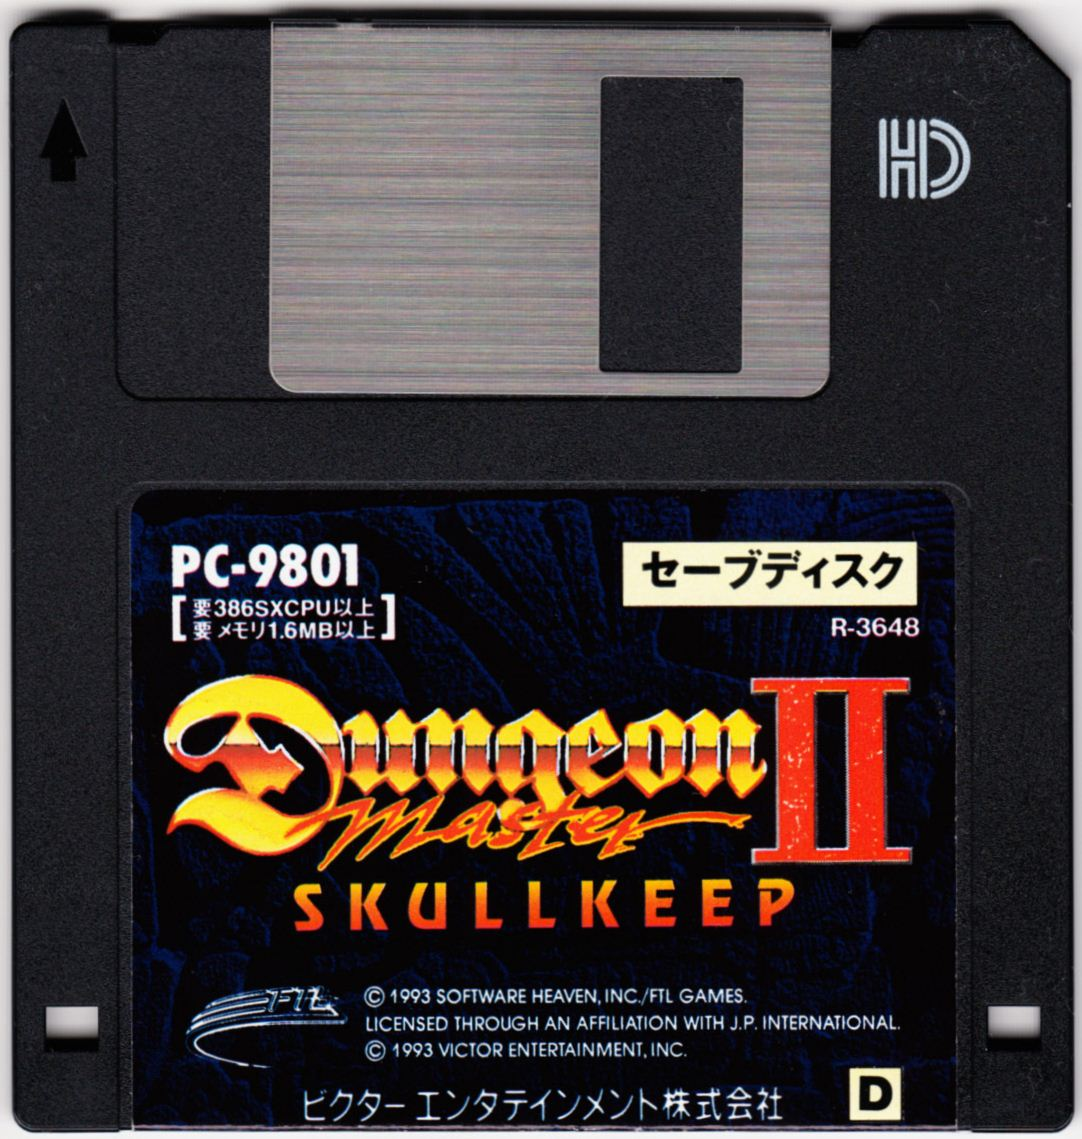 Game - Dungeon Master II - JP - PC-9801 - 3.5-inch - Disk D Save Disk - Front - Scan